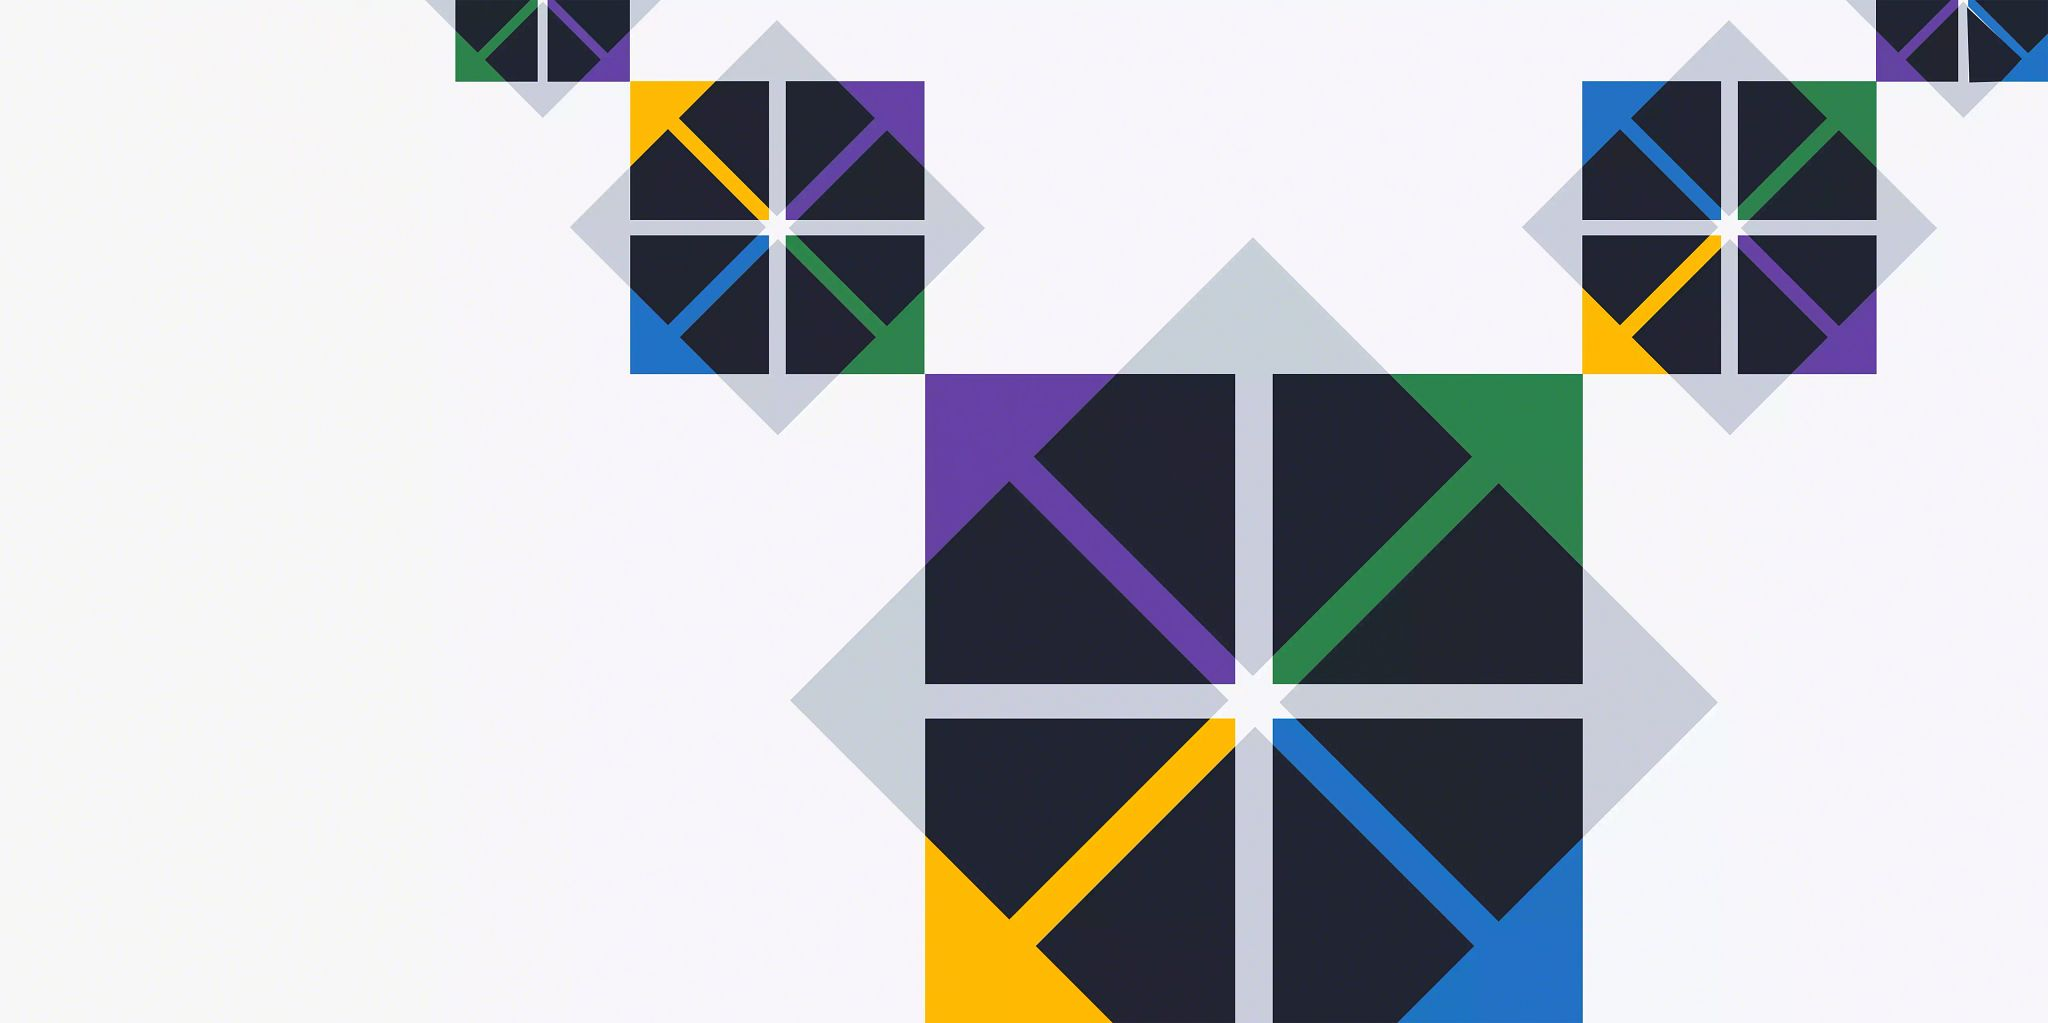 Article header image: Five squares with solid-colored arrows pointing to each corner. The boxes form a